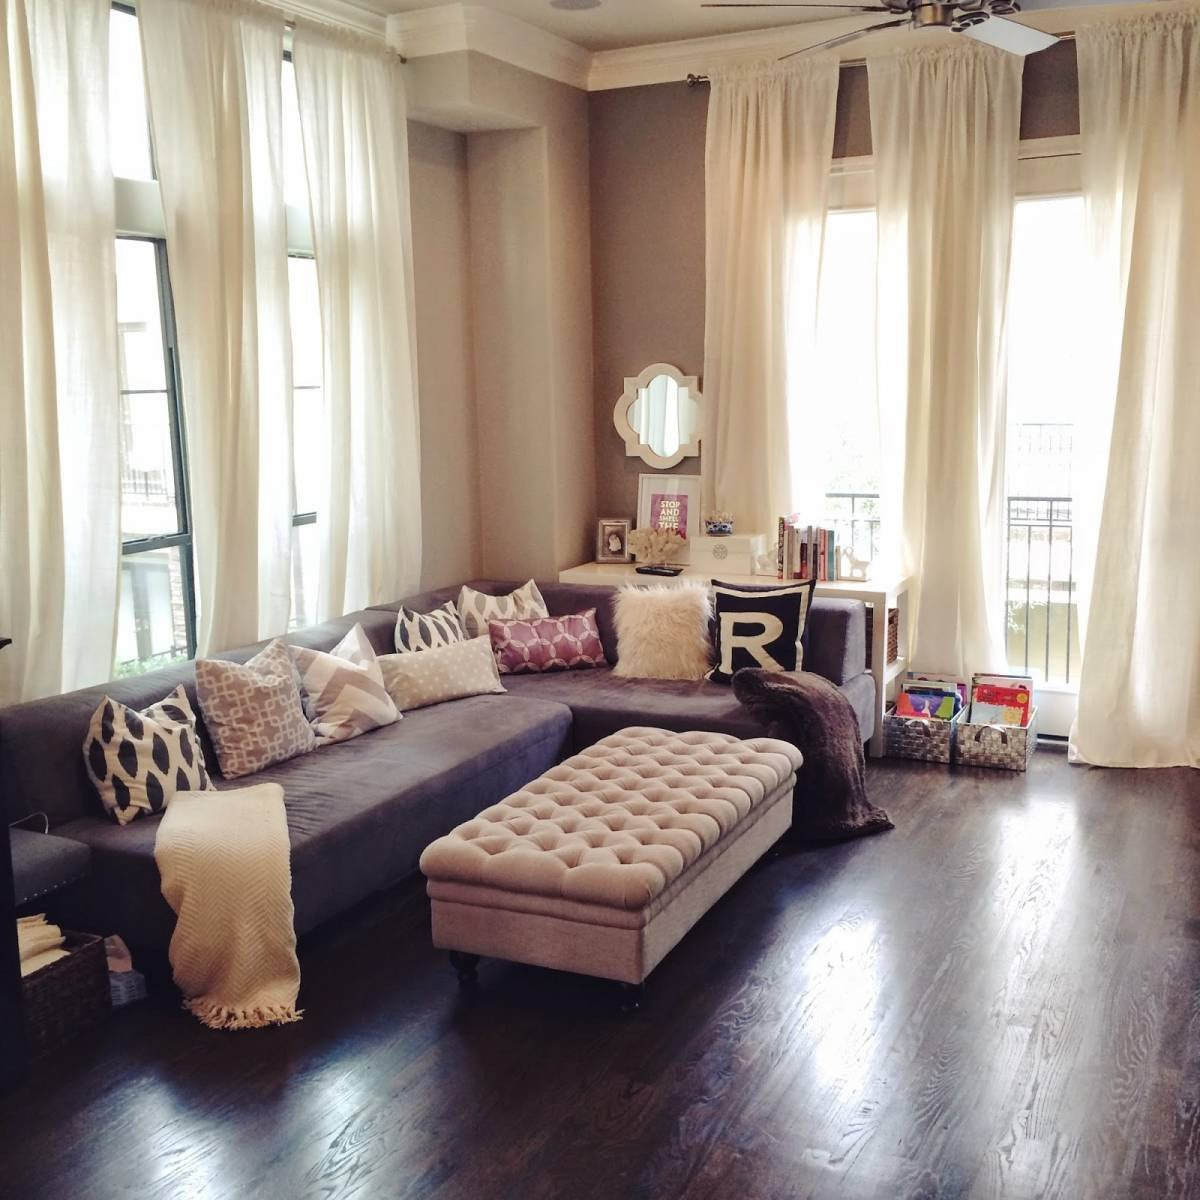 Curtain Ideasfor Living Room Best Of 25 Cool Living Room Curtain Ideas for Your Farmhouse Interior Design Inspirations